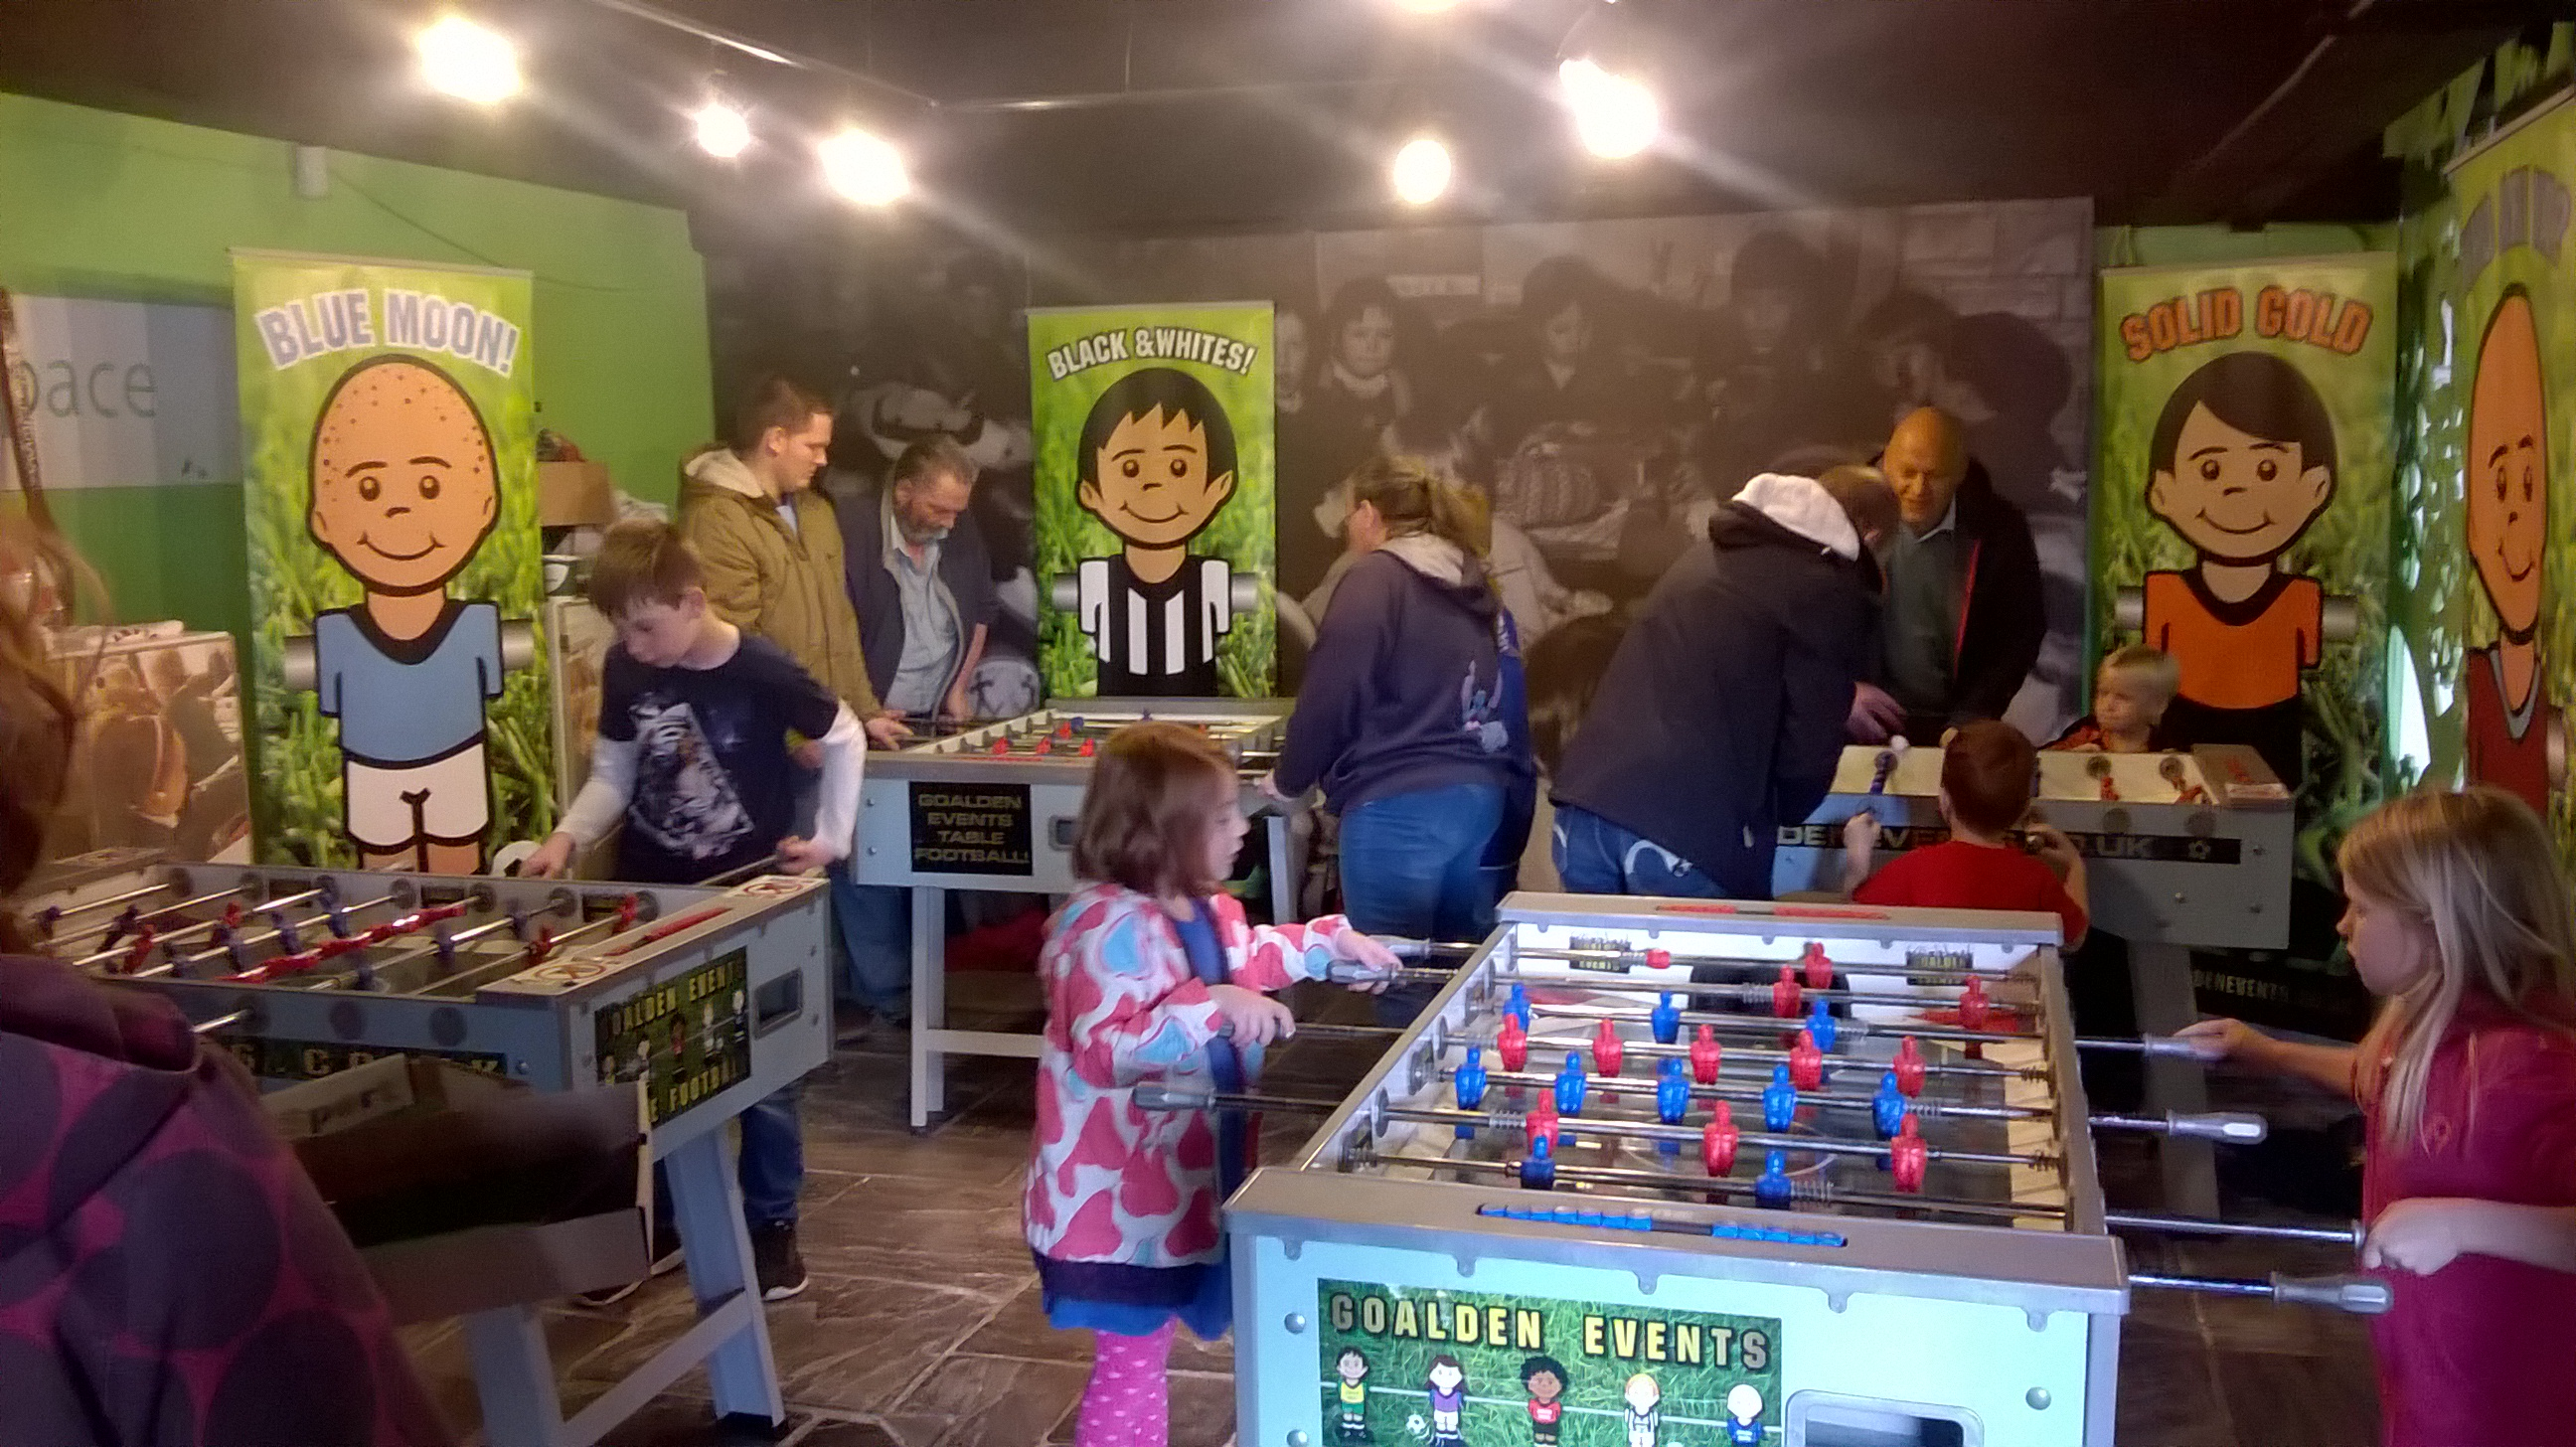 Indoor Table Football